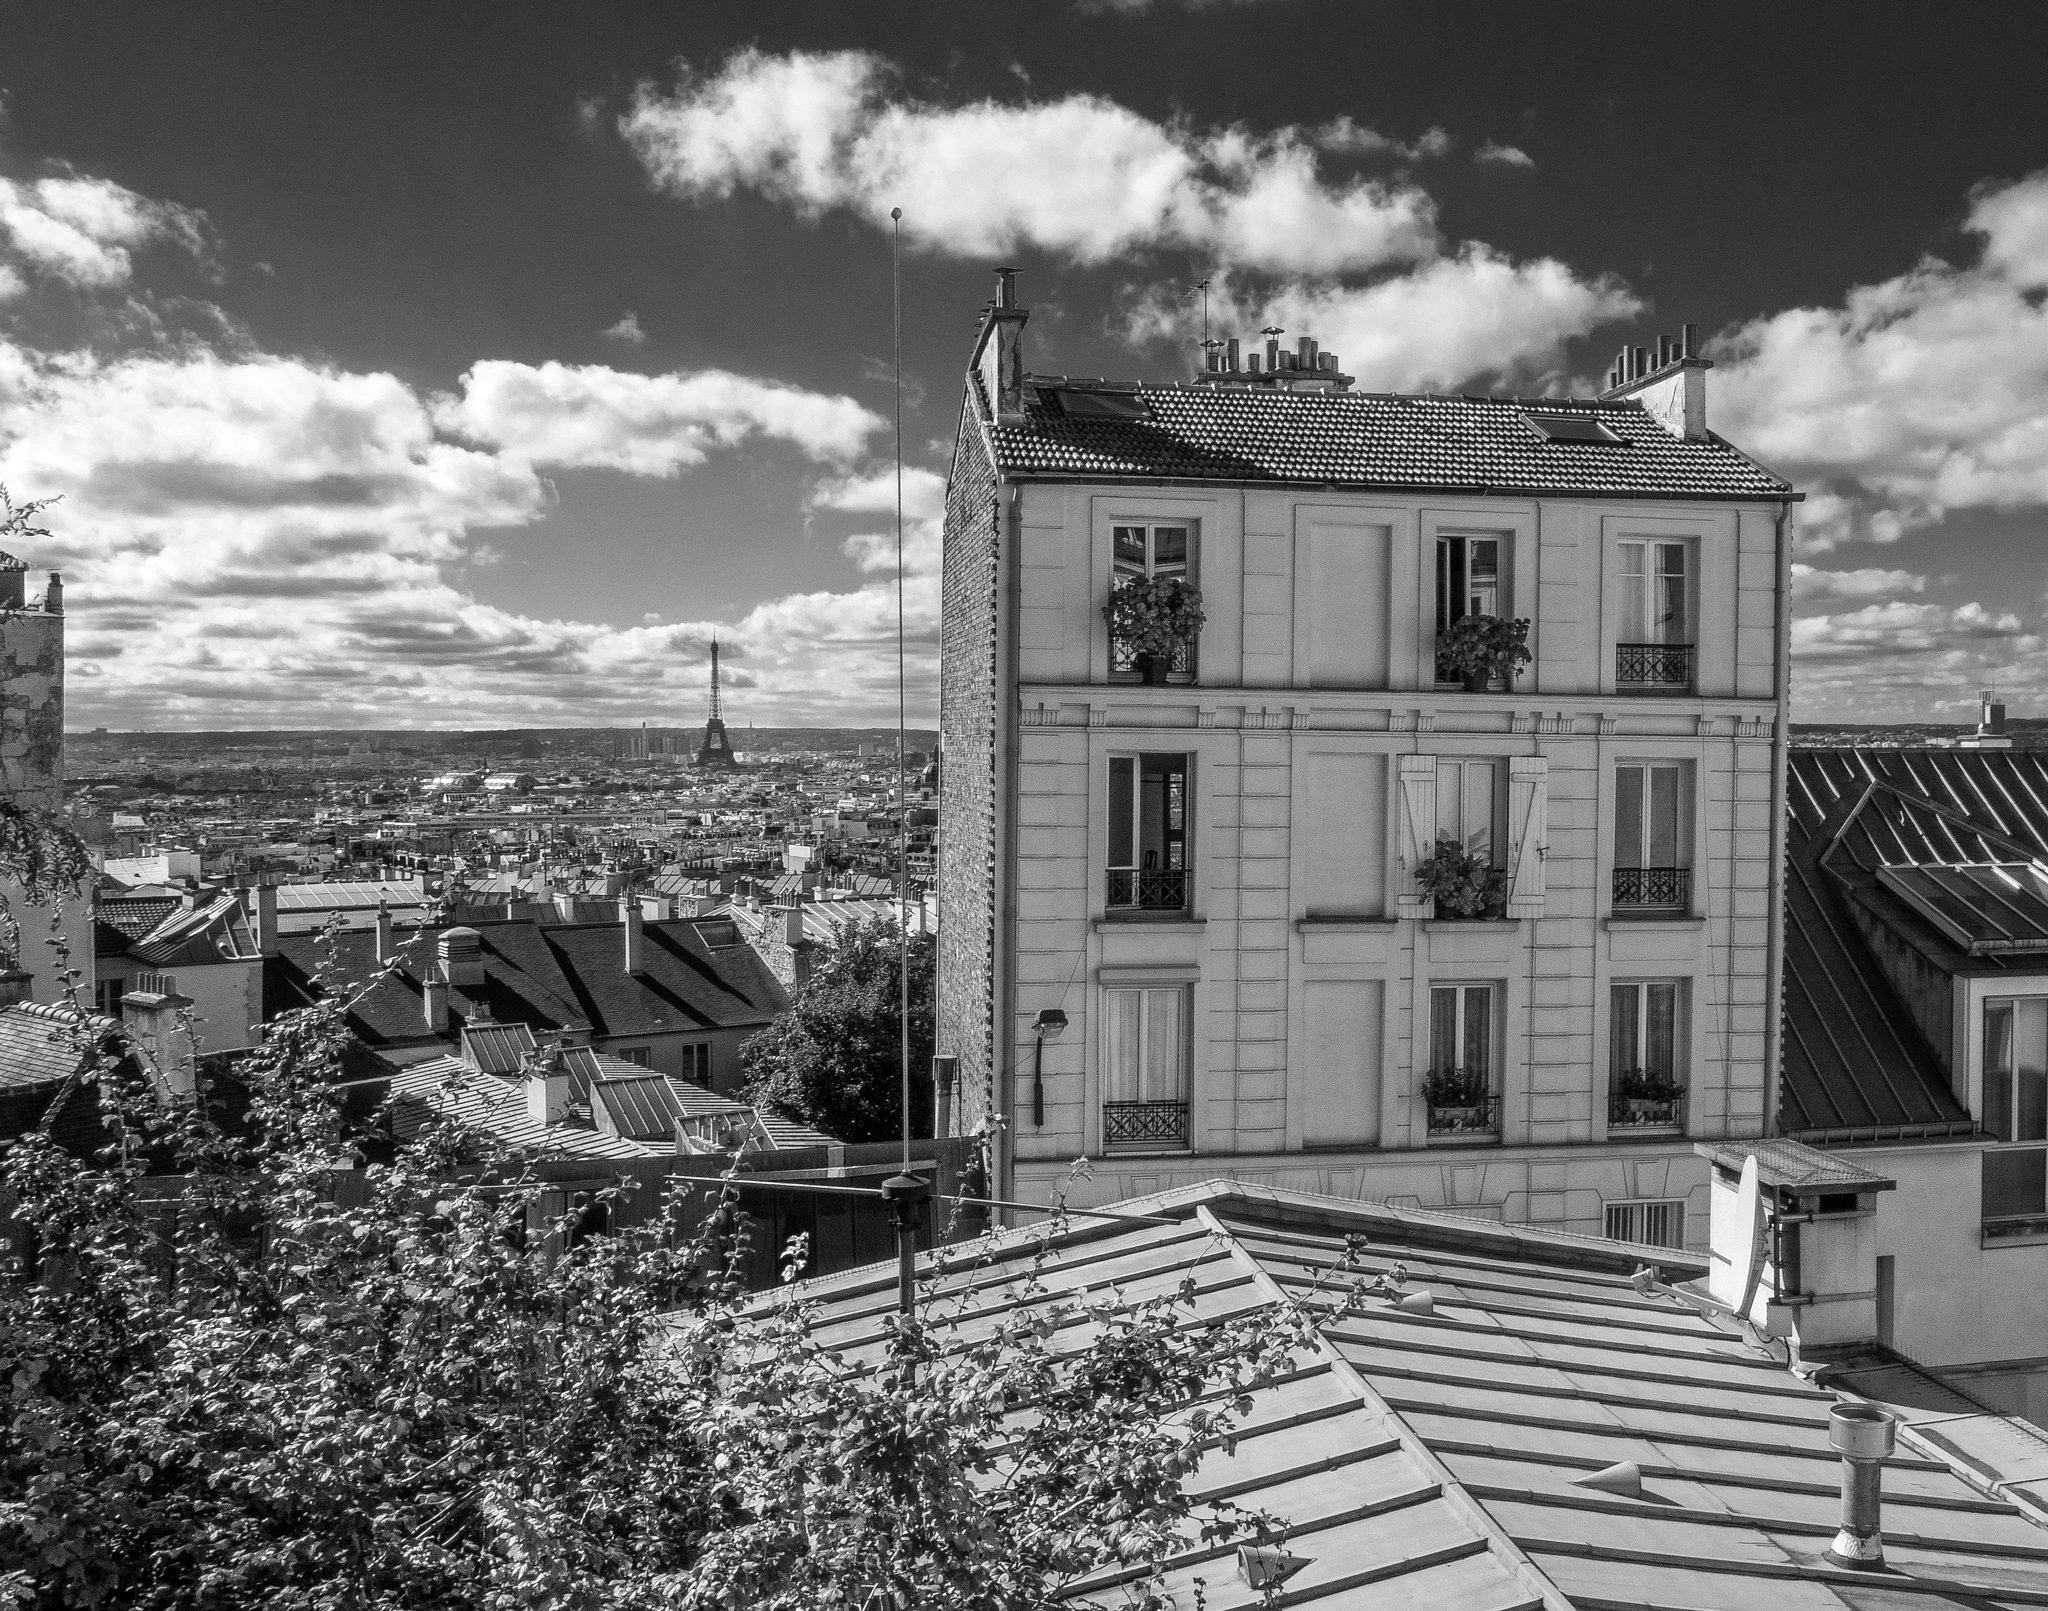 View from apartment by BradSchade